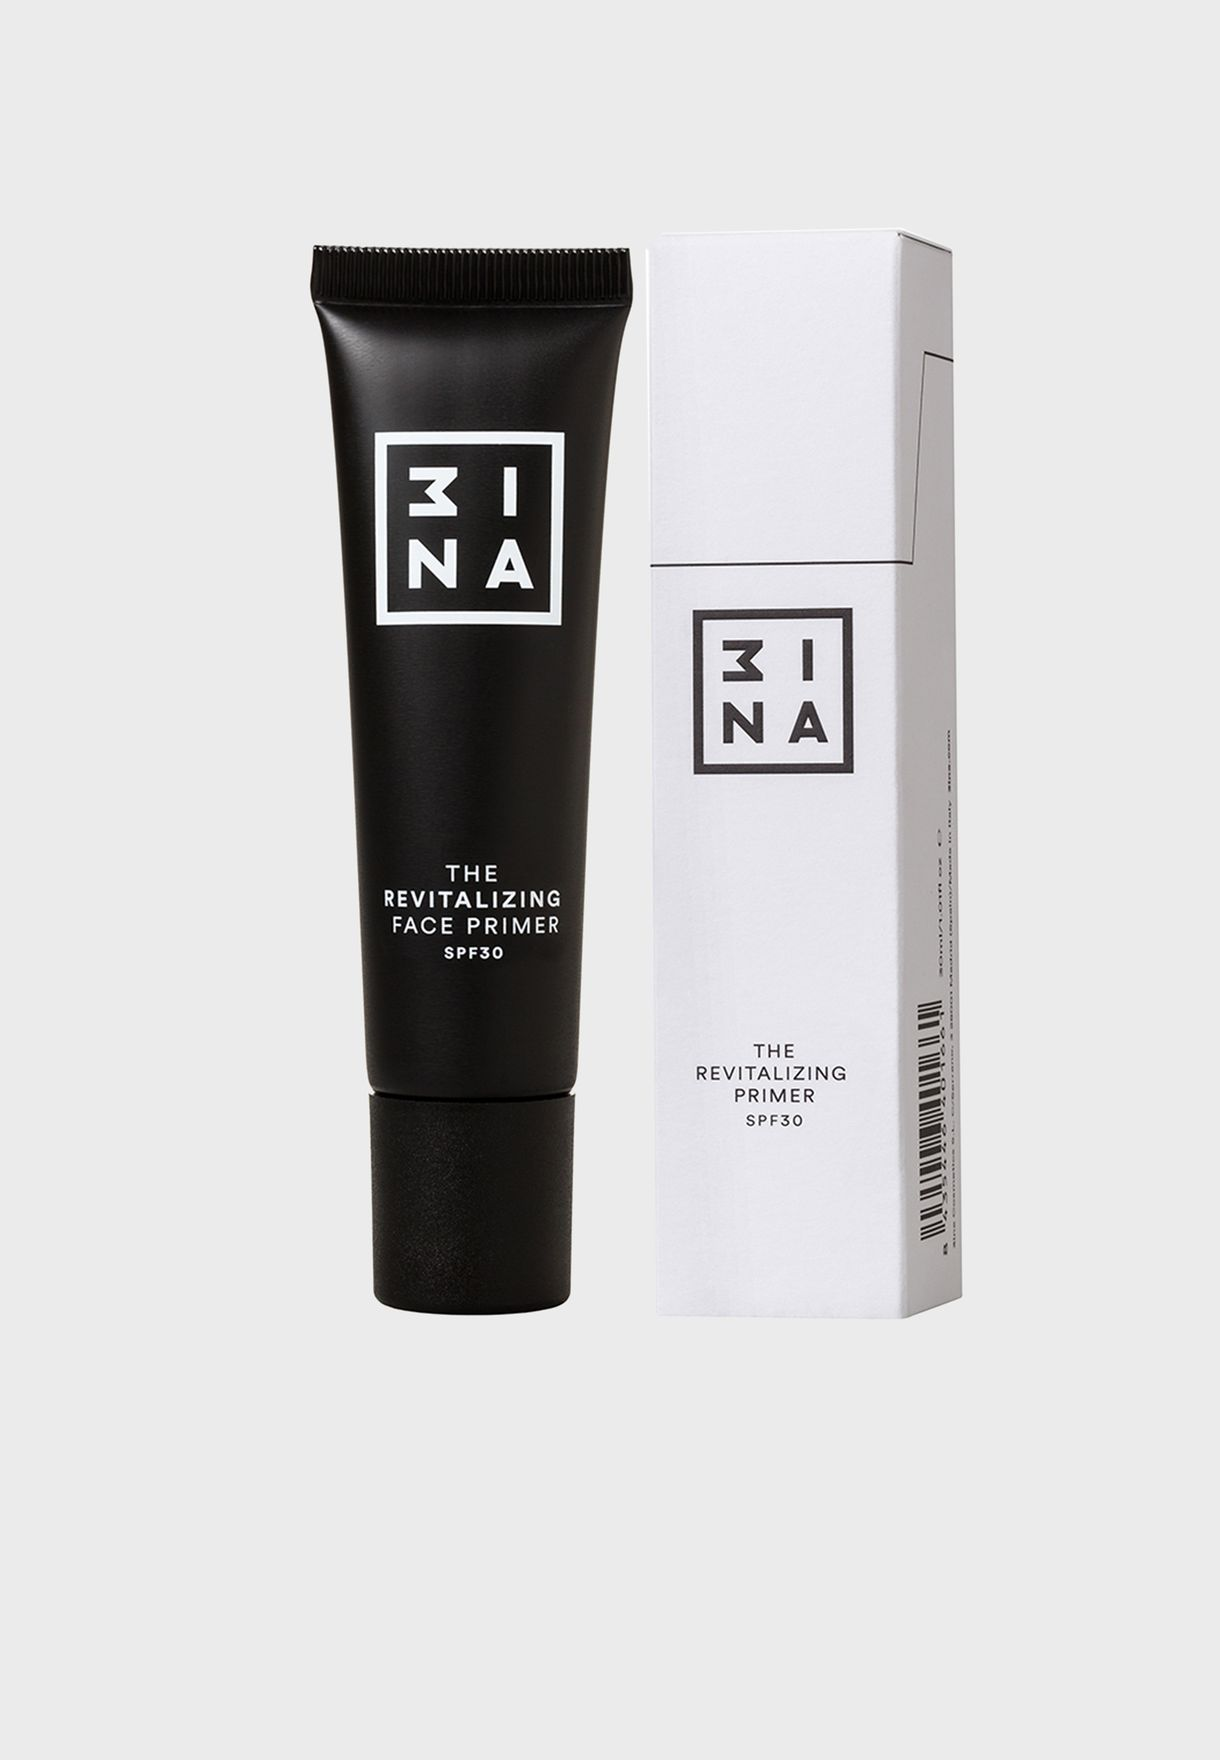 The Revitalizing Primer